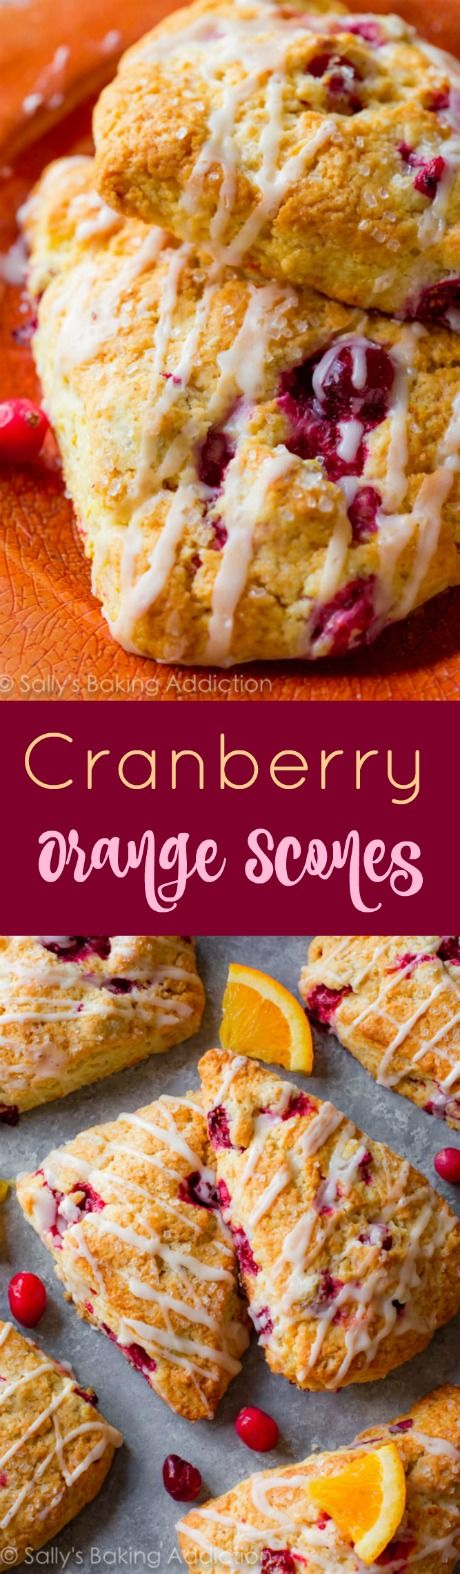 The bright flavor, the ease of the recipe, the crumbly edges, the cranberries, the fresh orange zest... just stop what you're doing and get baking!